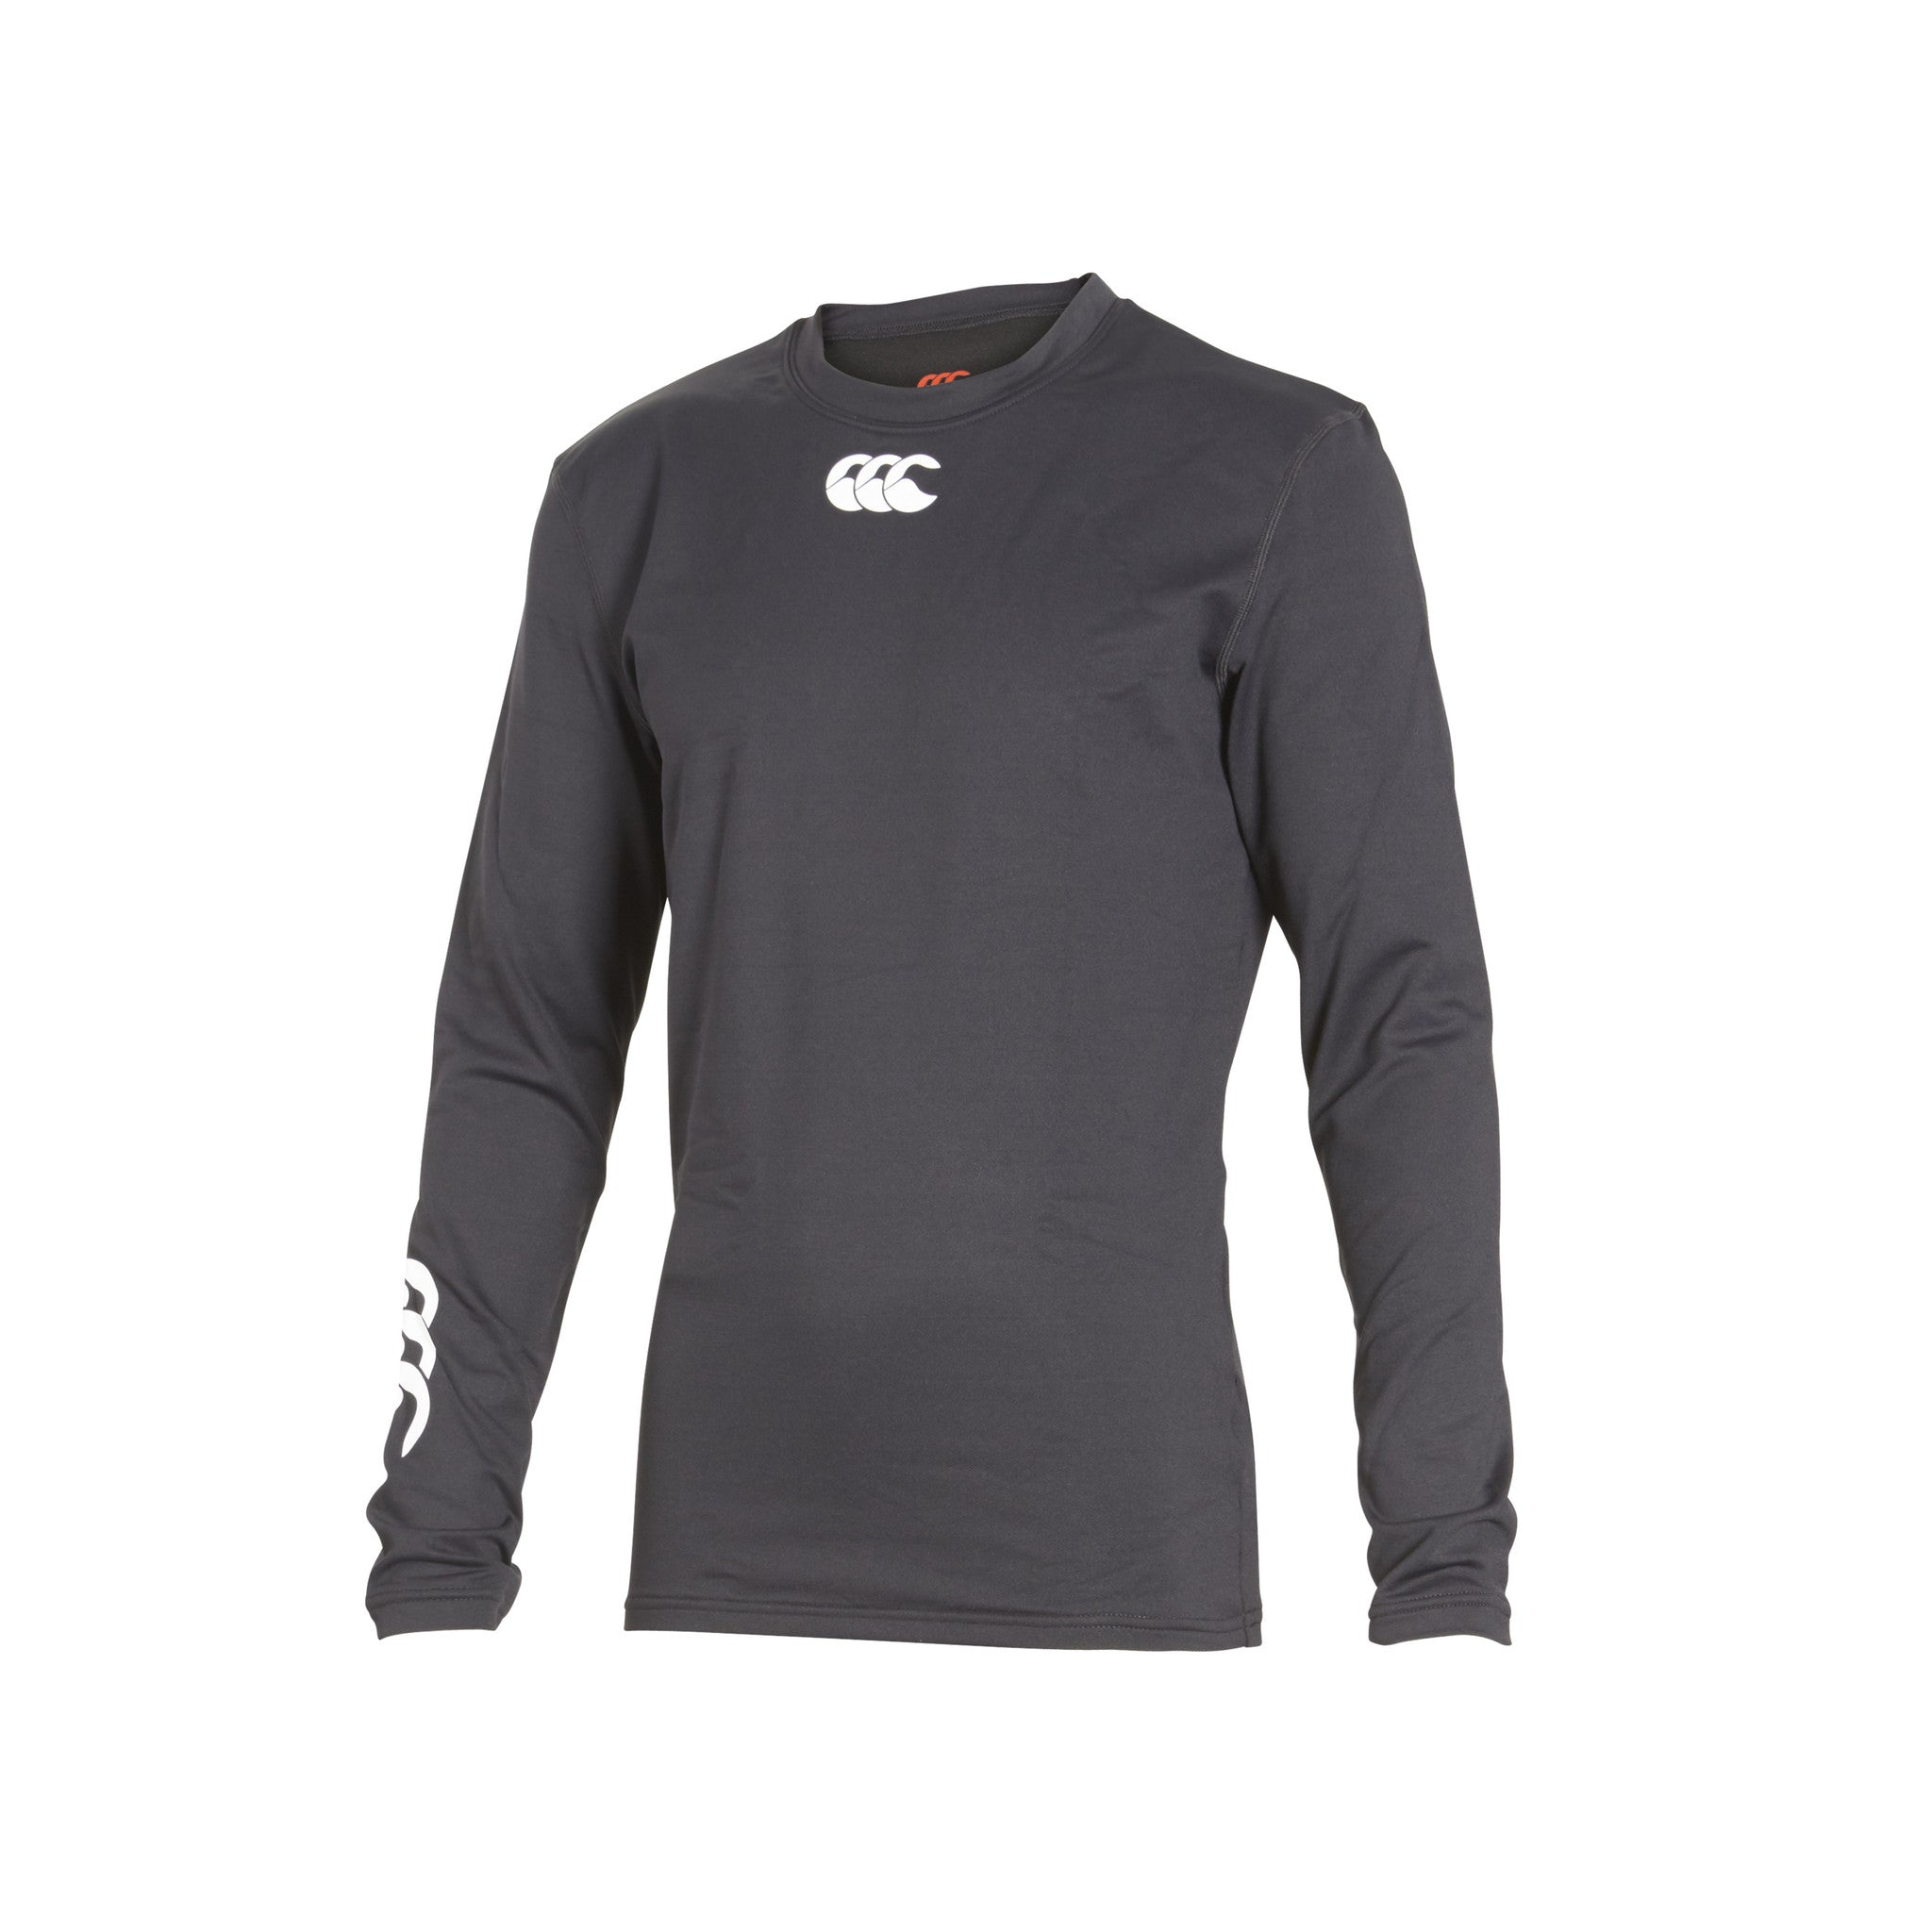 Senior Baselayer Top